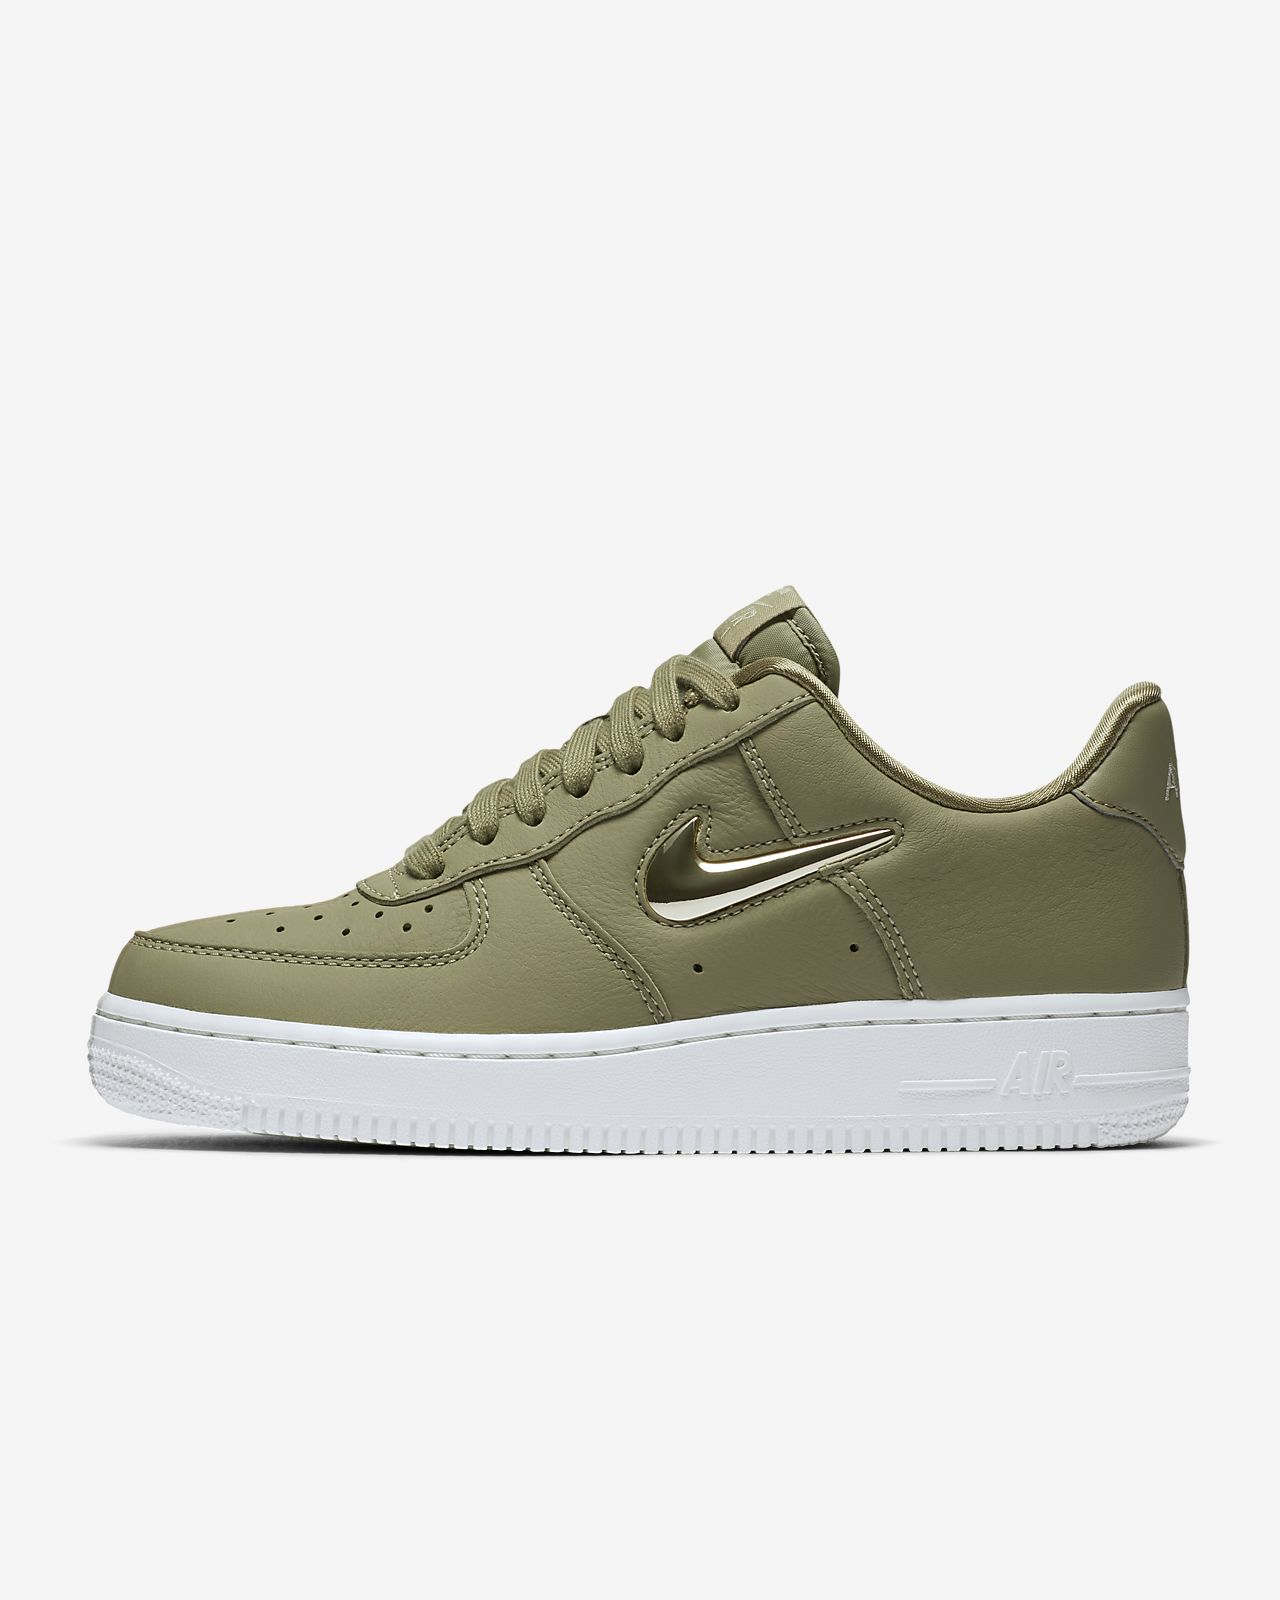 Force One Impressionnismes Olive Nike Des Giverny Green Musée Air UzpVSMq